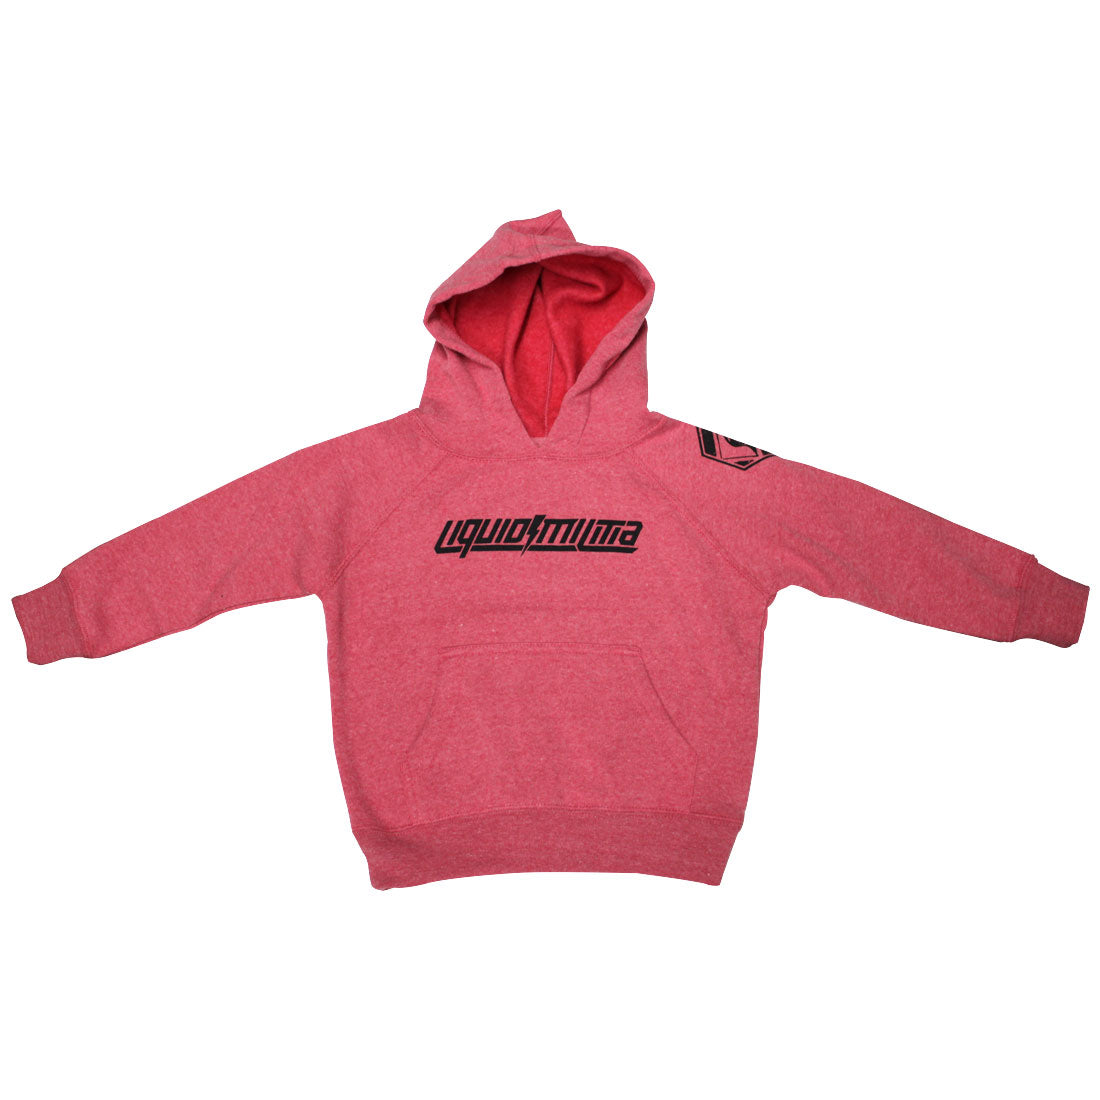 Pass Toddler Hooded Pullover Sweatshirt in Pomegranate